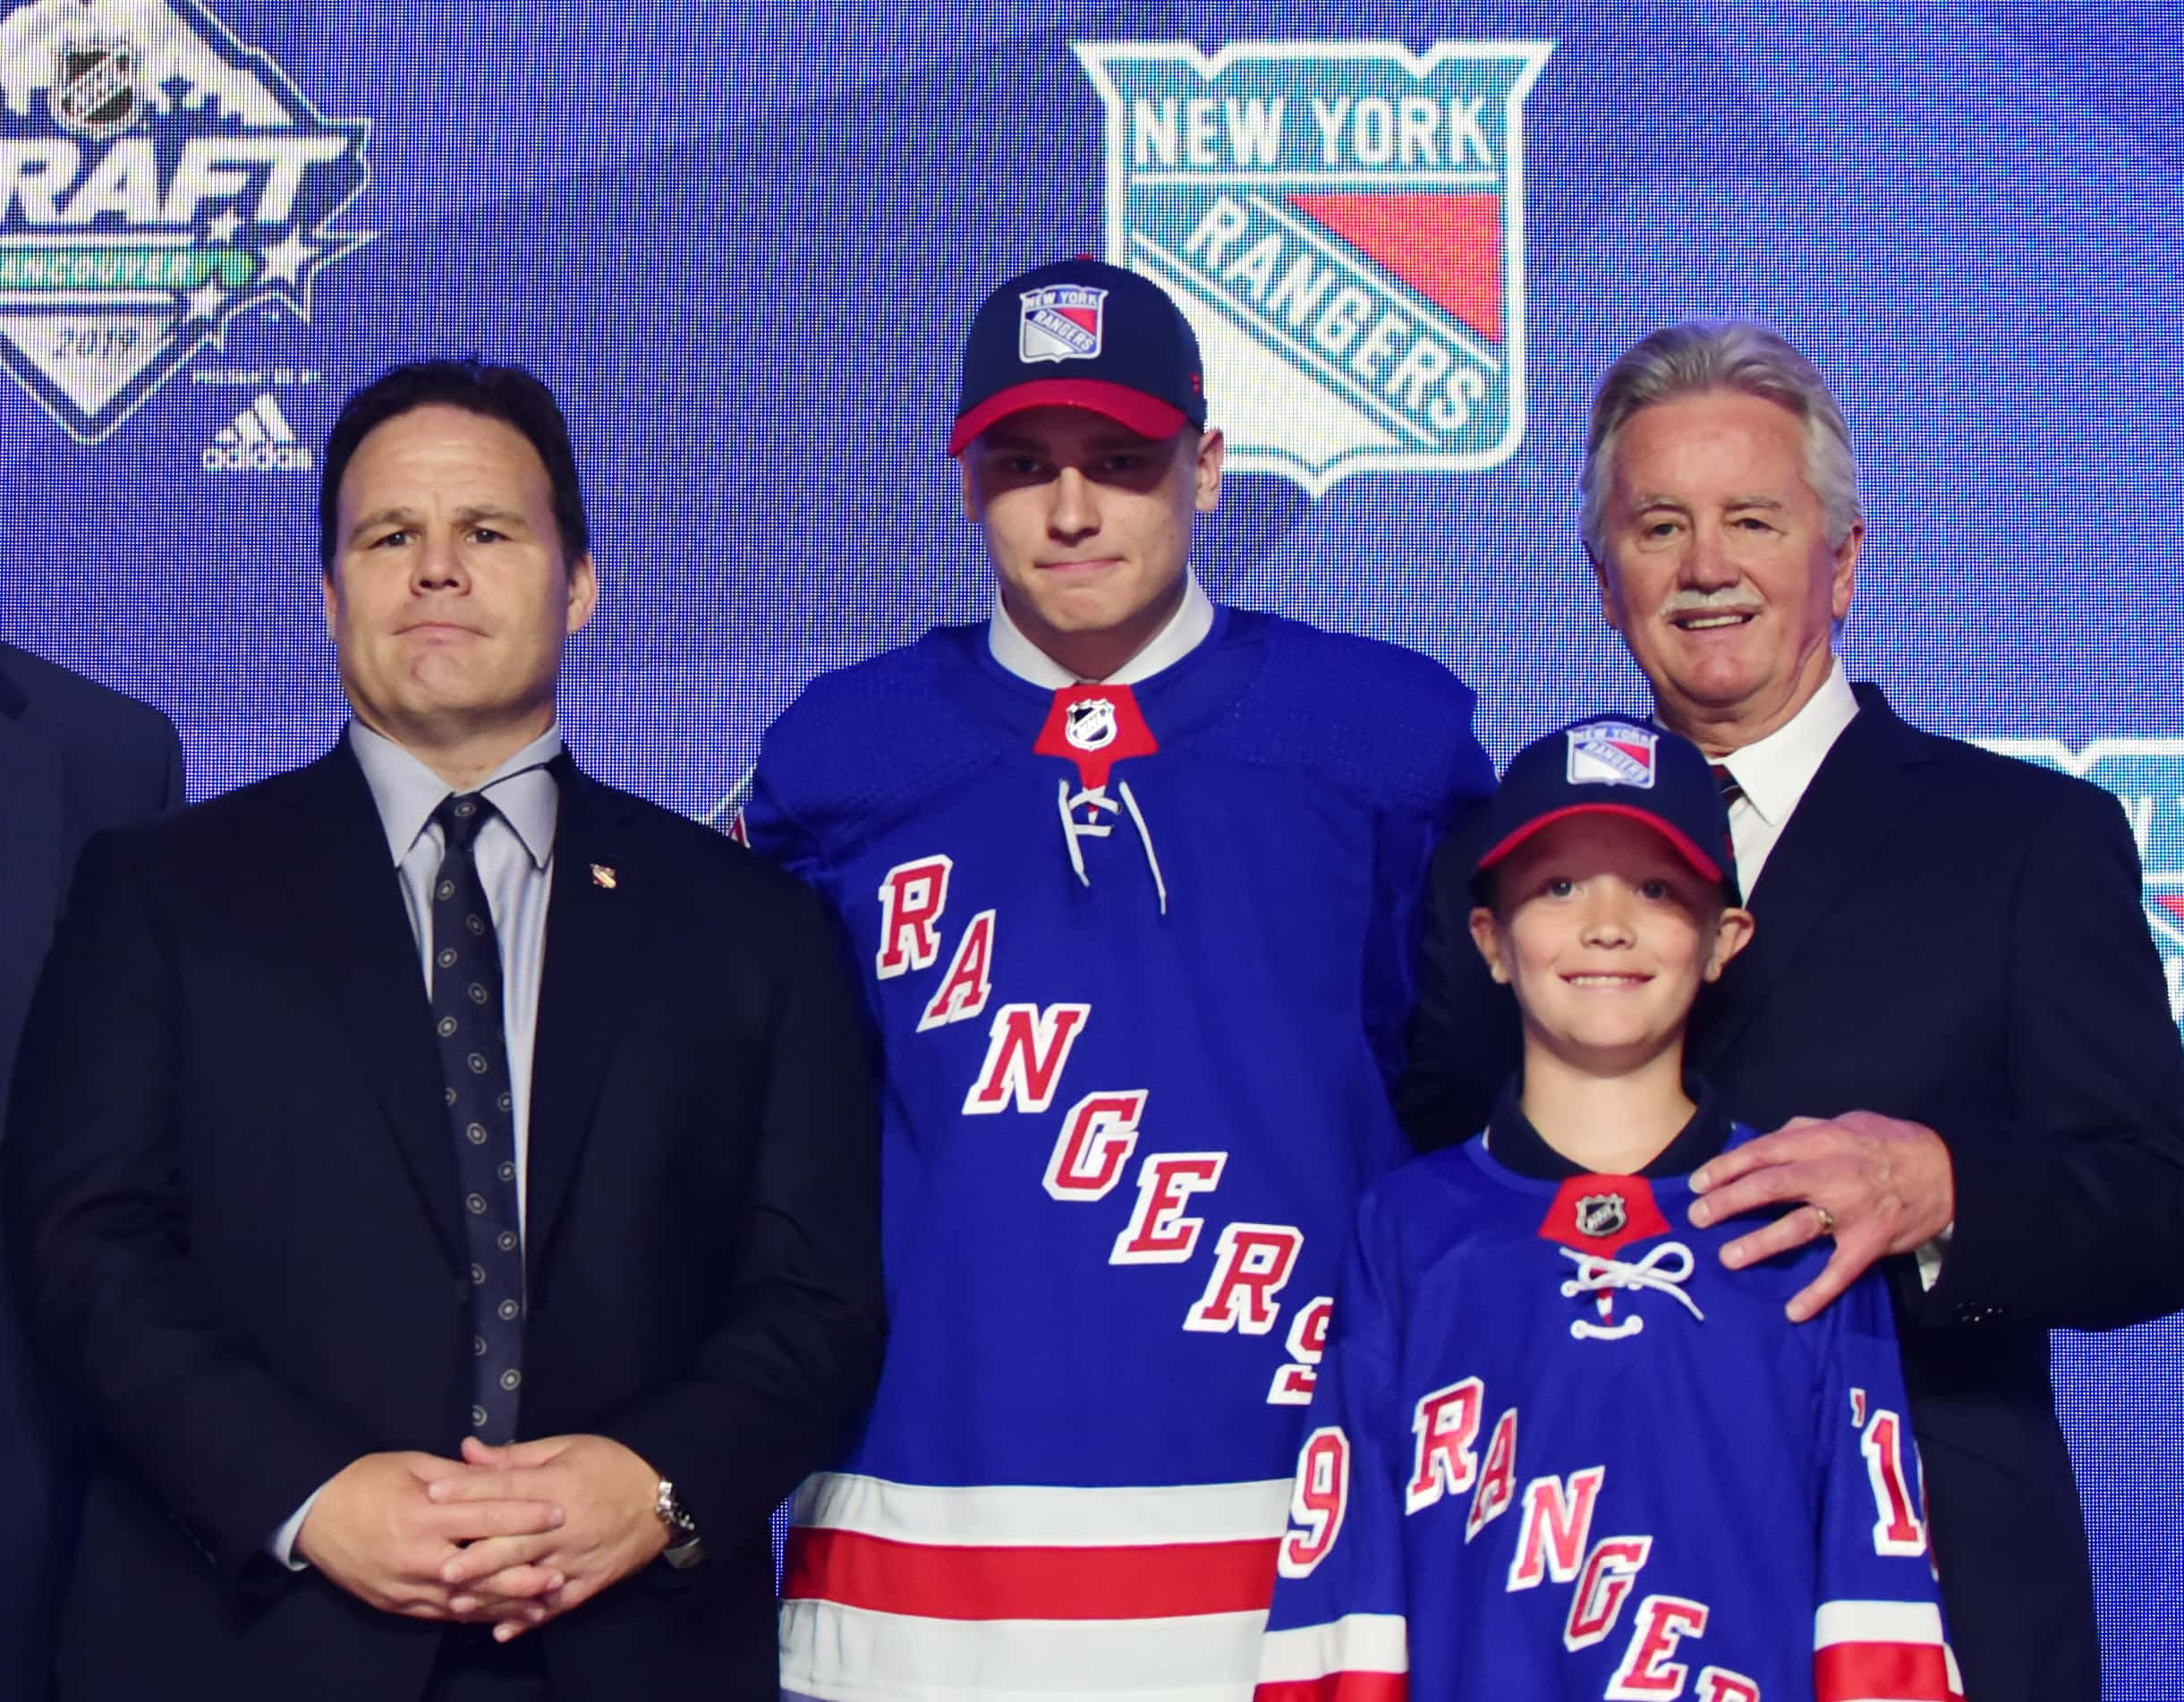 Jun 21, 2019; Vancouver, BC, Canada; Kaapo Kakko poses for a photo after being selected as the number two overall pick to the New York Rangers in the first round of the 2019 NHL Draft at Rogers Arena. Mandatory Credit: Anne-Marie Sorvin-USA TODAY Sports